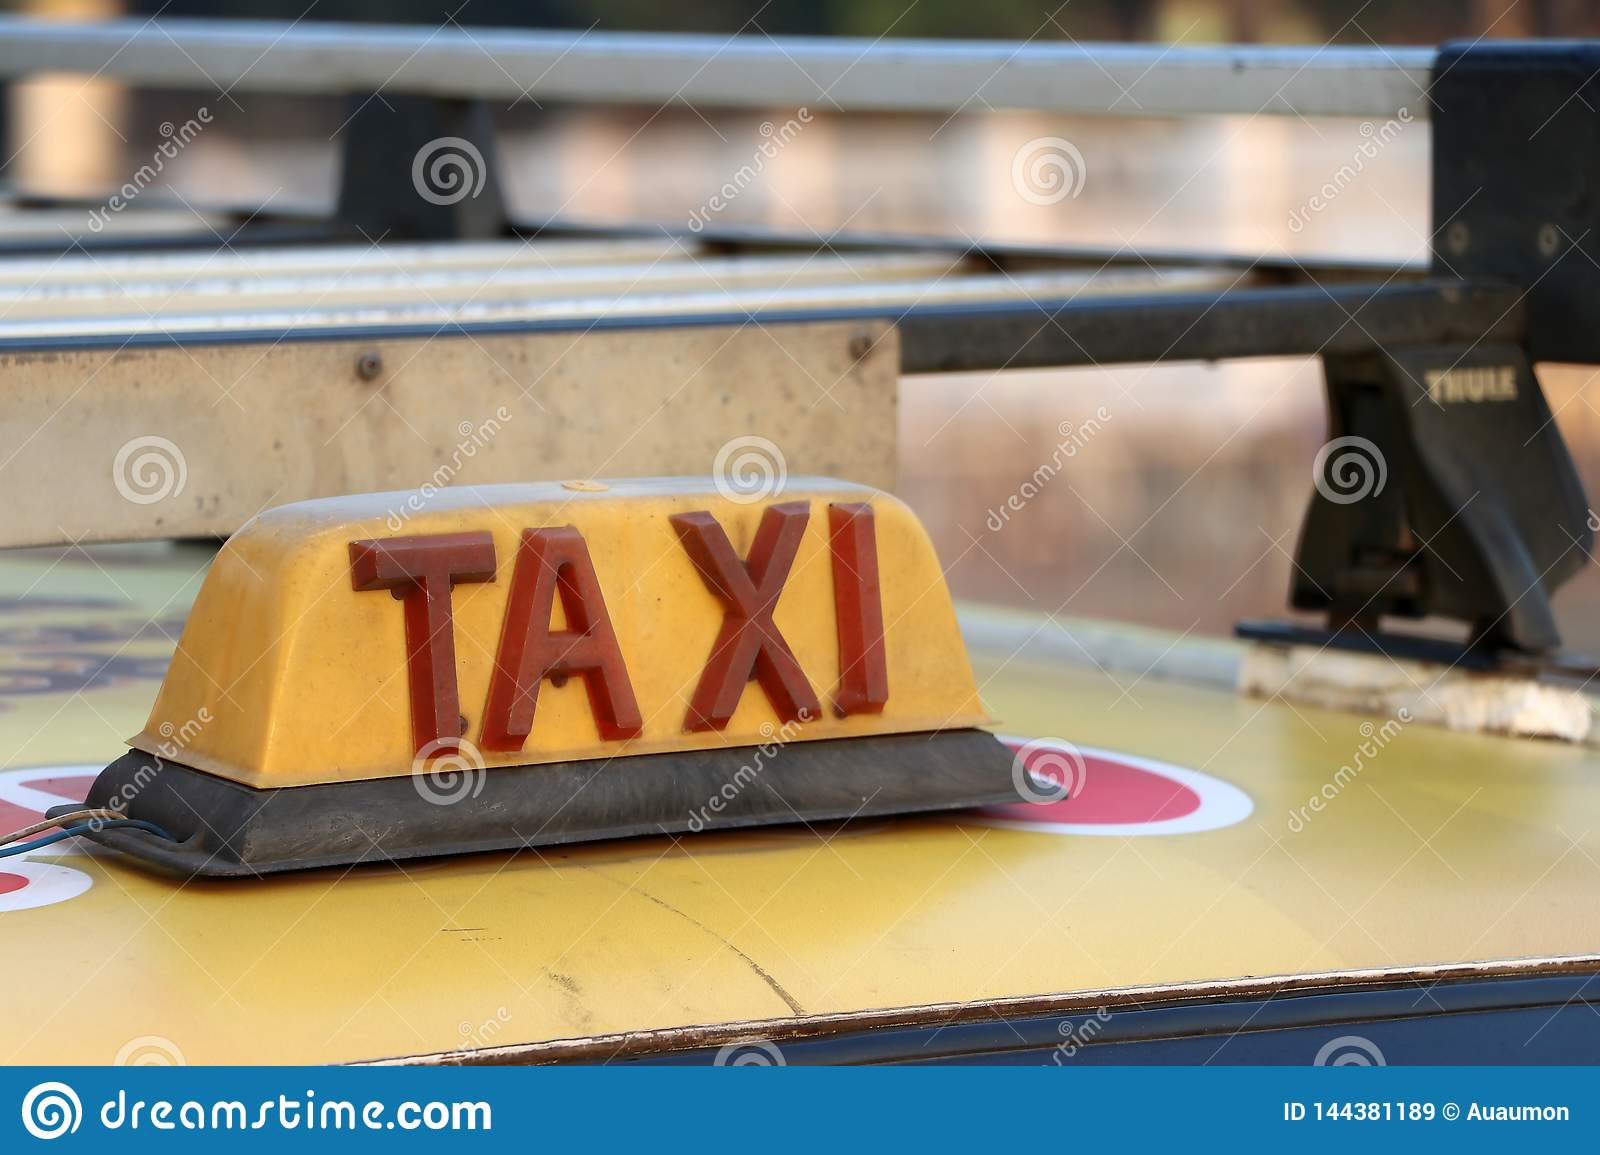 Taxi light sign or cab sign in drab yellow color with red text on the car roof